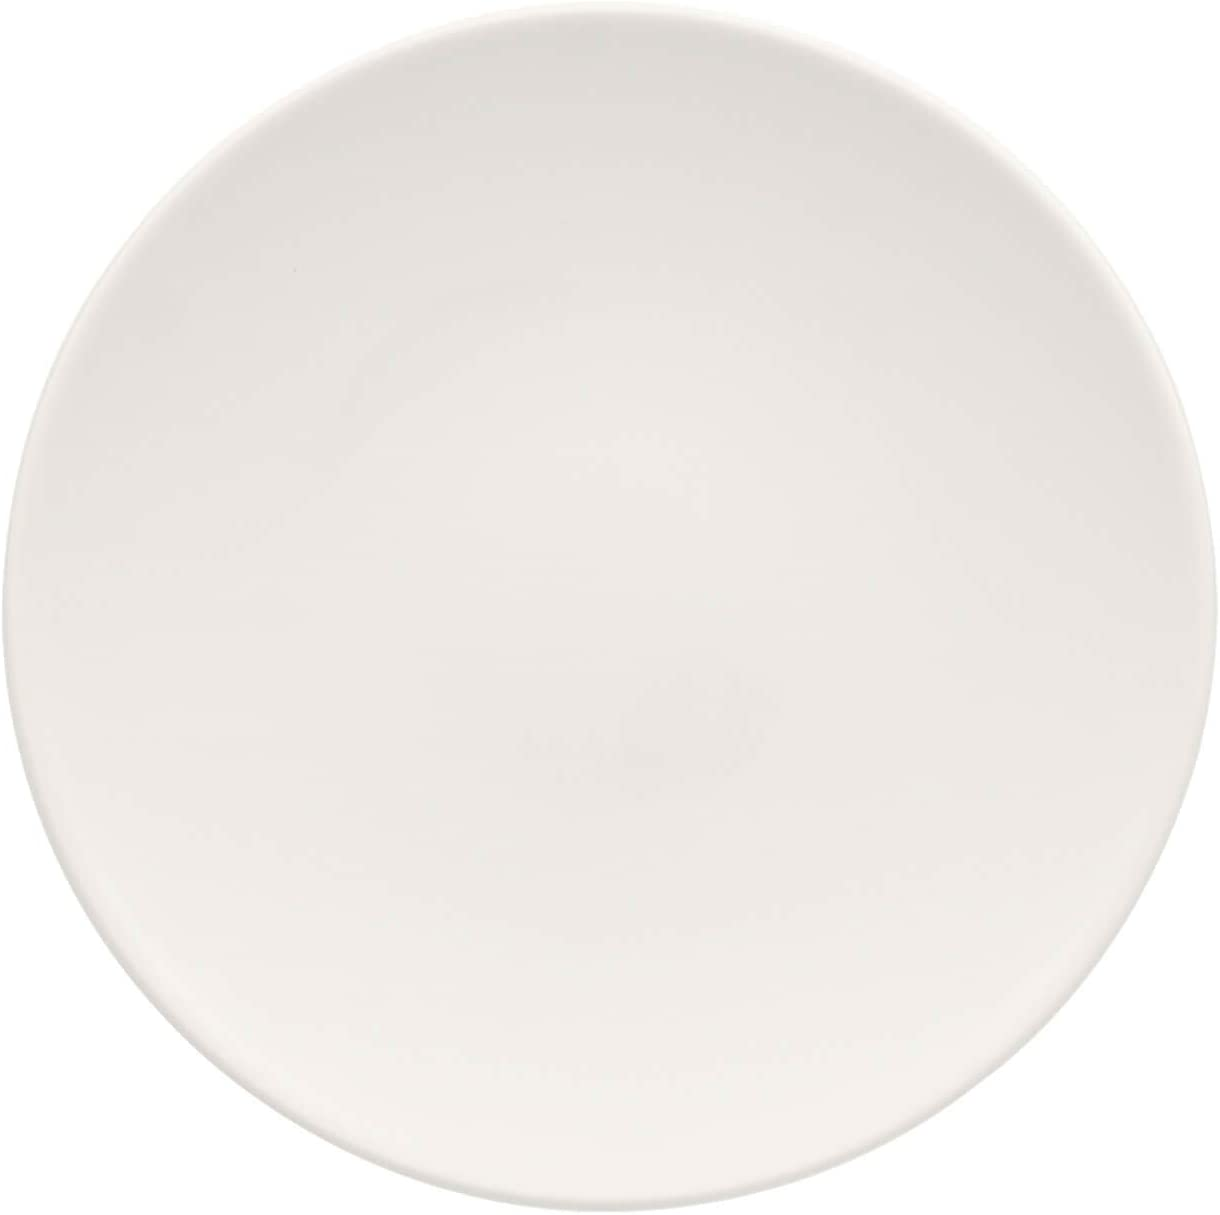 For Me Coupe Dinner Plate Set of 6 by Villeroy & Boch - Premium Porcelain - Made in Germany - Dishwasher and Microwave Safe - 11.5 Inches